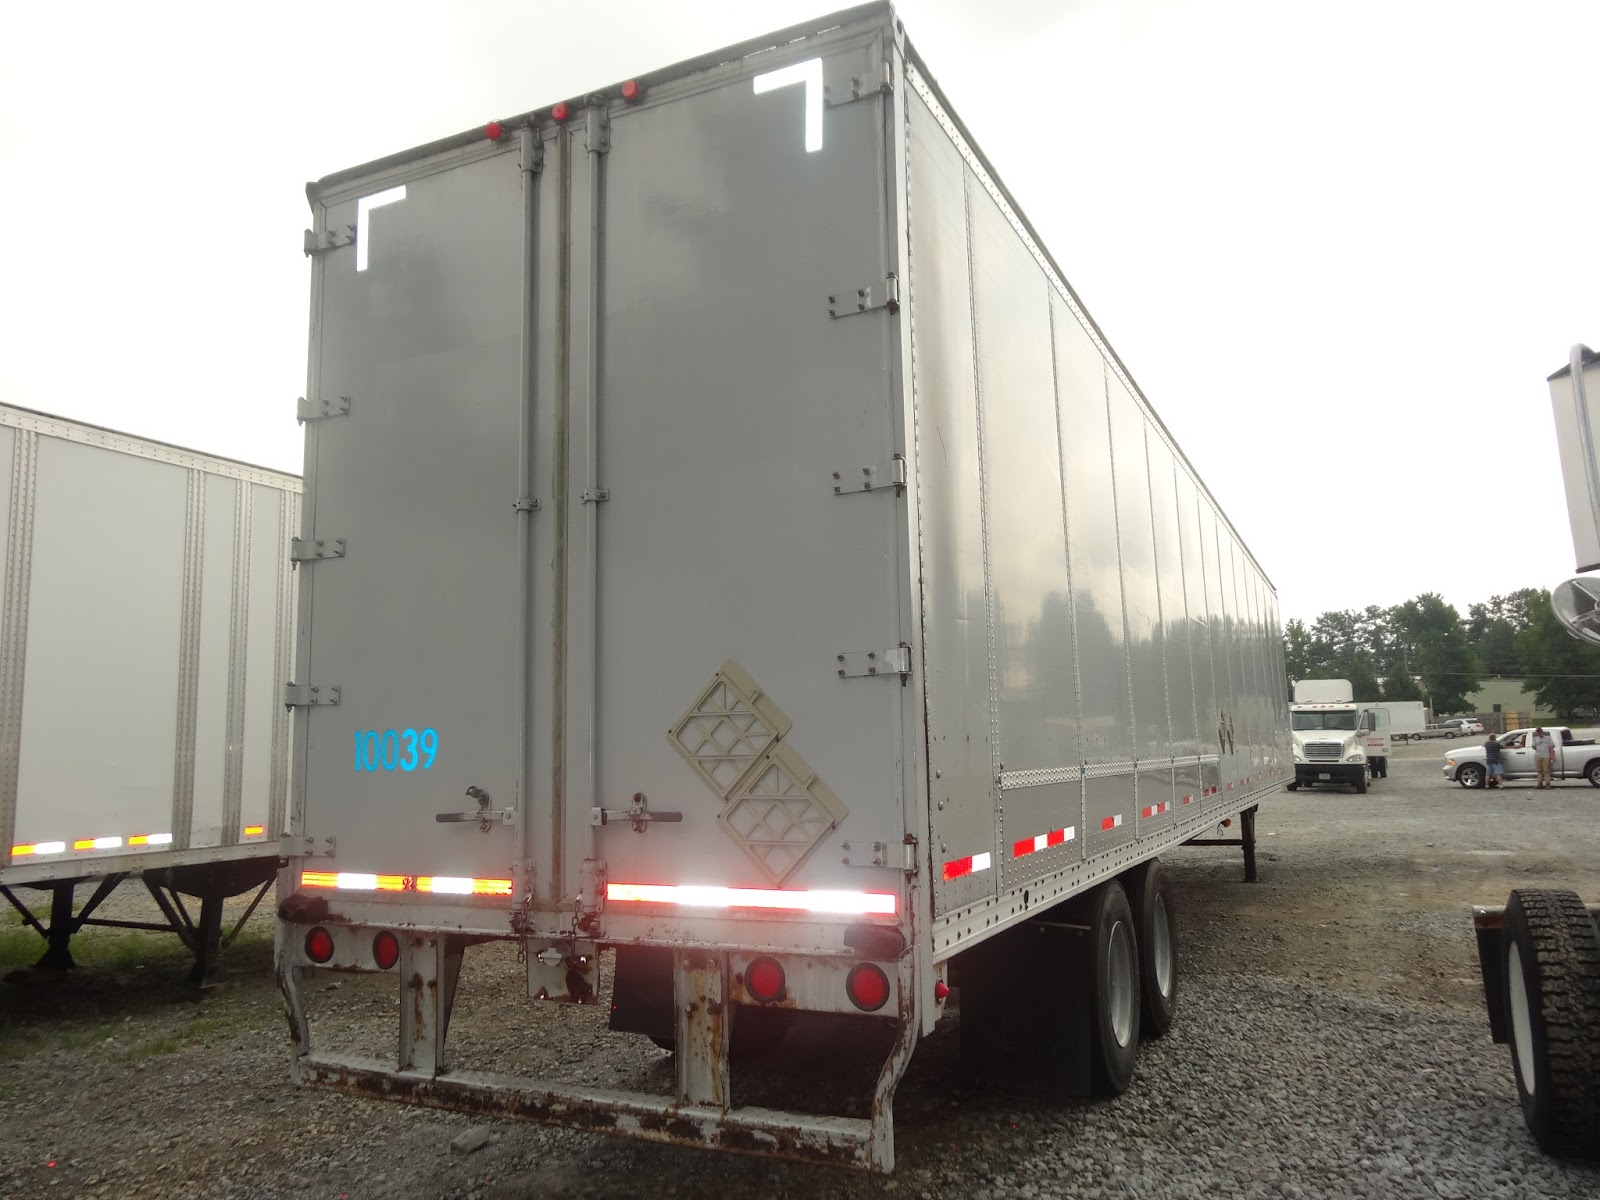 53\u0027 Semi Trailer Door Options Swing \u0026 Roll.  sc 1 st  Atlanta Used Shipping Containers and Semi Trailers & 53\u0027 Semi Trailer Door Options Swing \u0026 Roll. | Atlanta Used Shipping ...